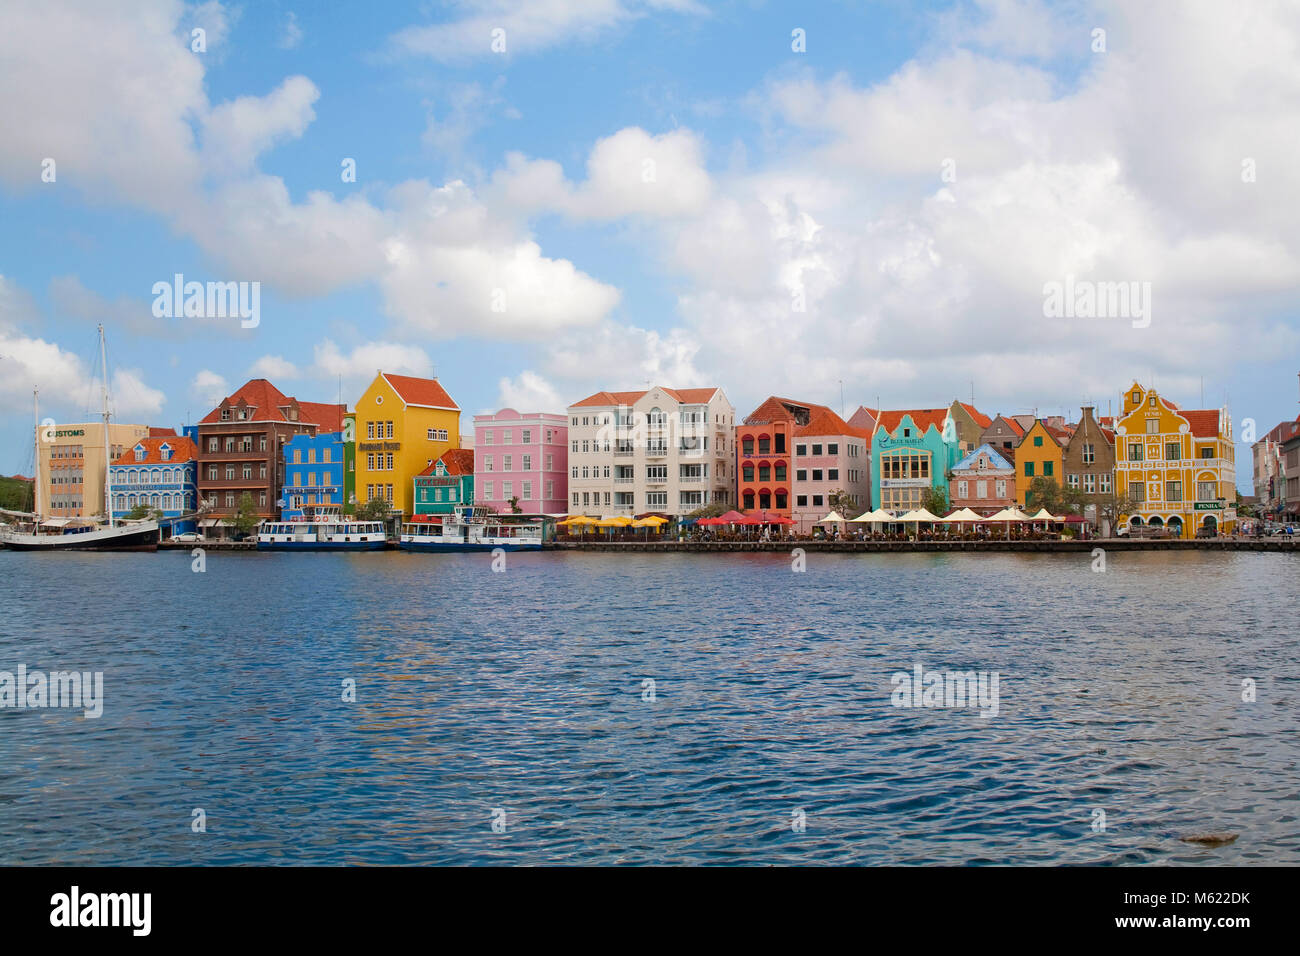 Trade arcade historical colonial buildings and gastronomy at waterfront, Punda district, Willemstad, Curacao, Netherlands - Stock Image